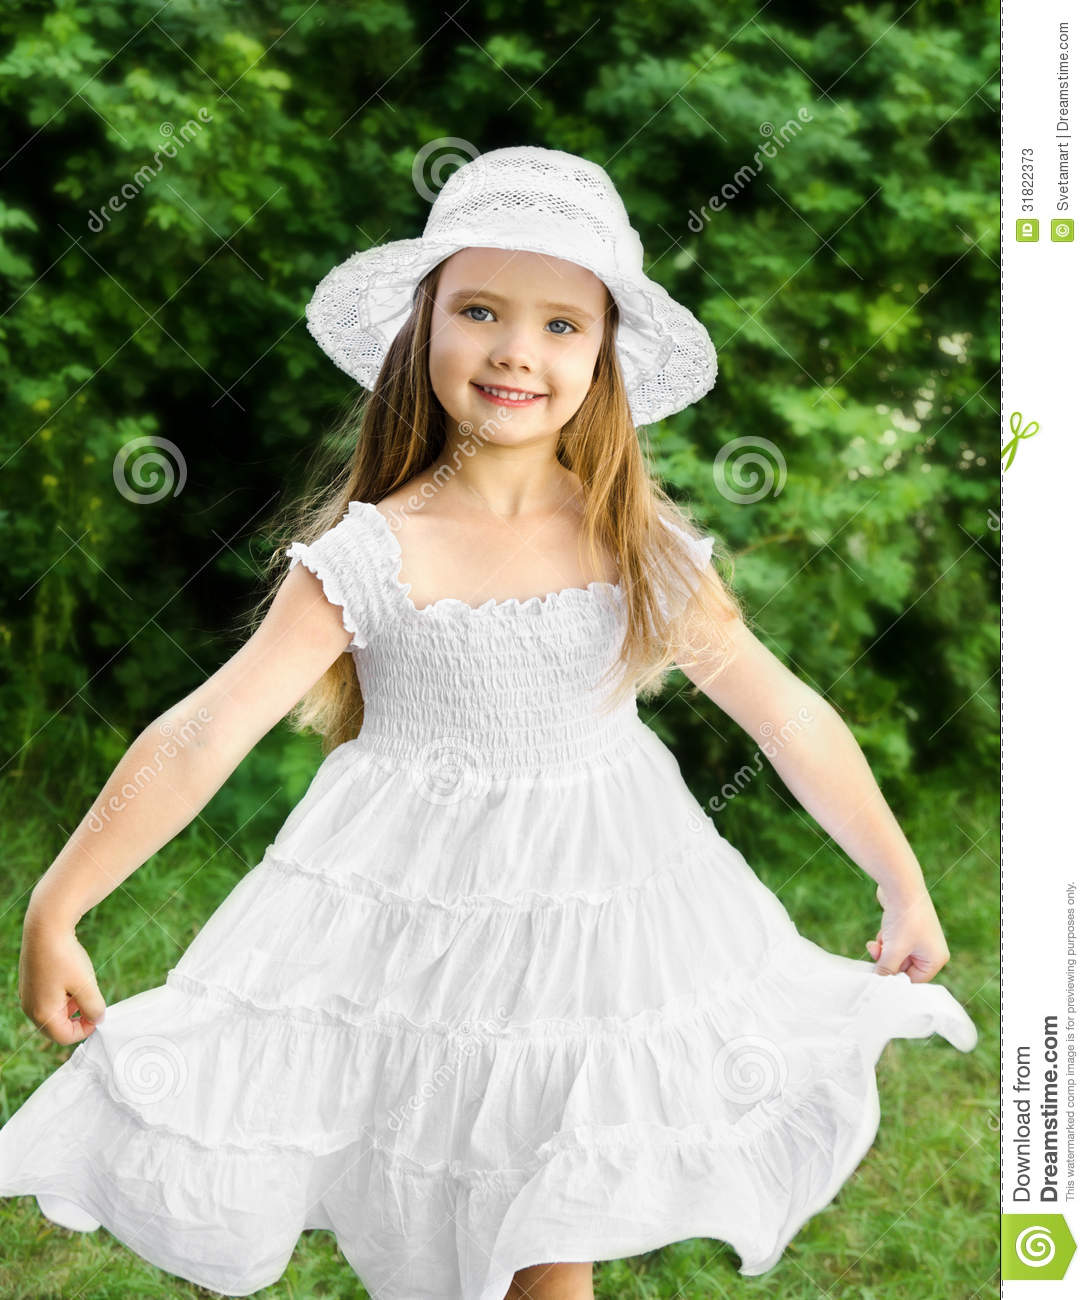 Portrait Of Adorable Smiling Little Girl In White Dress And Hat ...